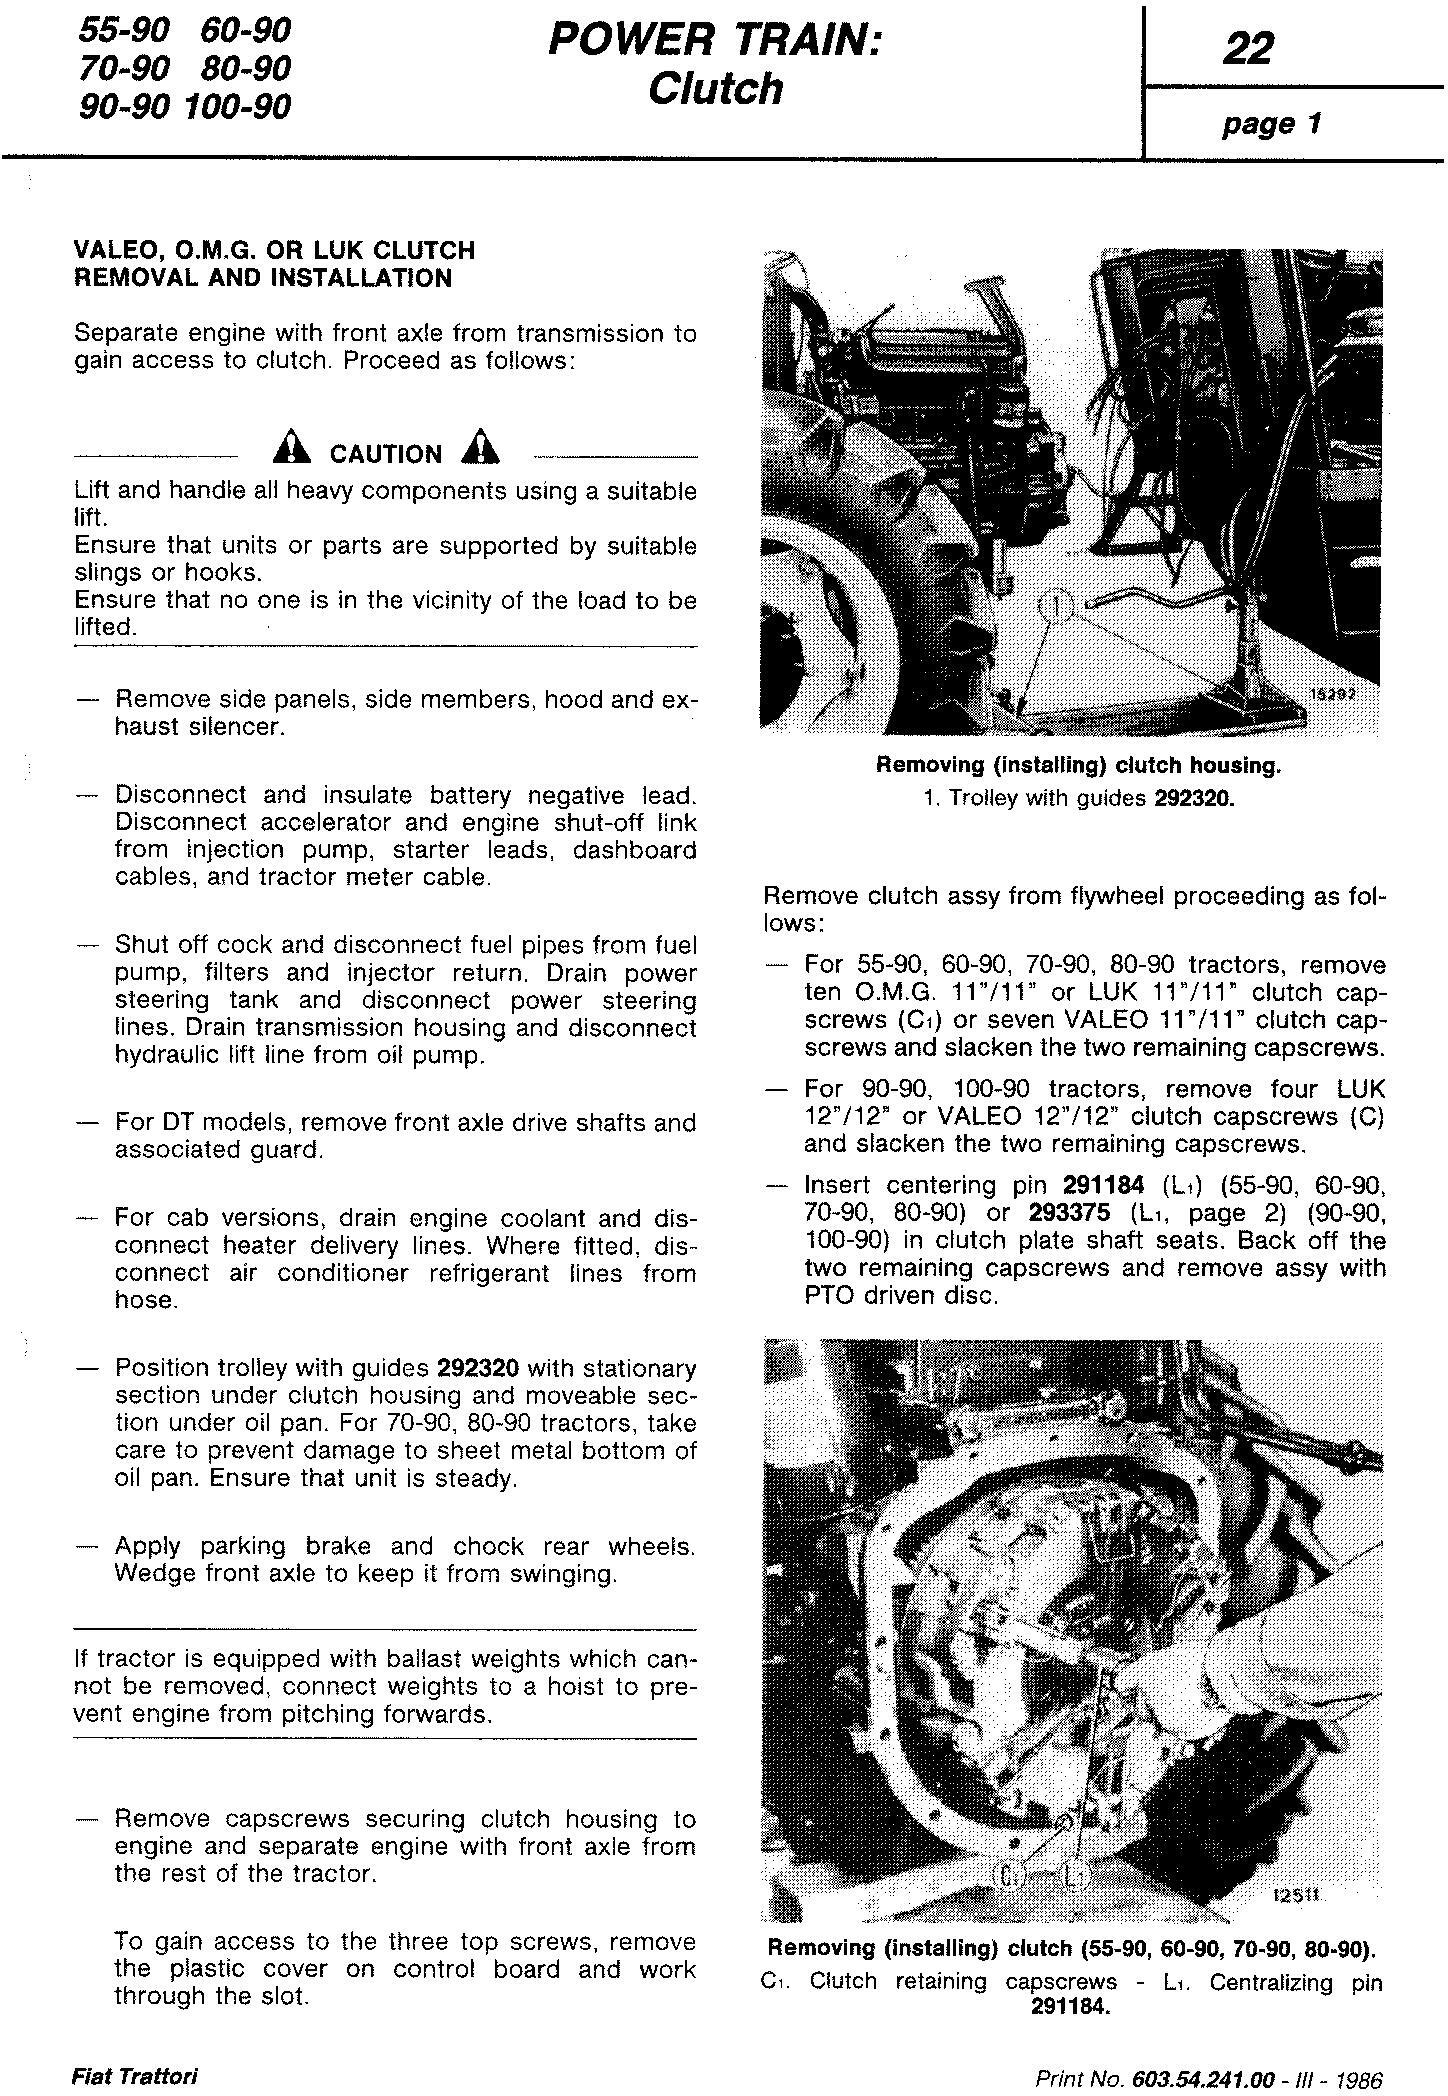 Fiat 55-90, 60-90, 70-90, 80-90, 90-90, 100- 90 Tractor Service Manual (6035424100) - 3